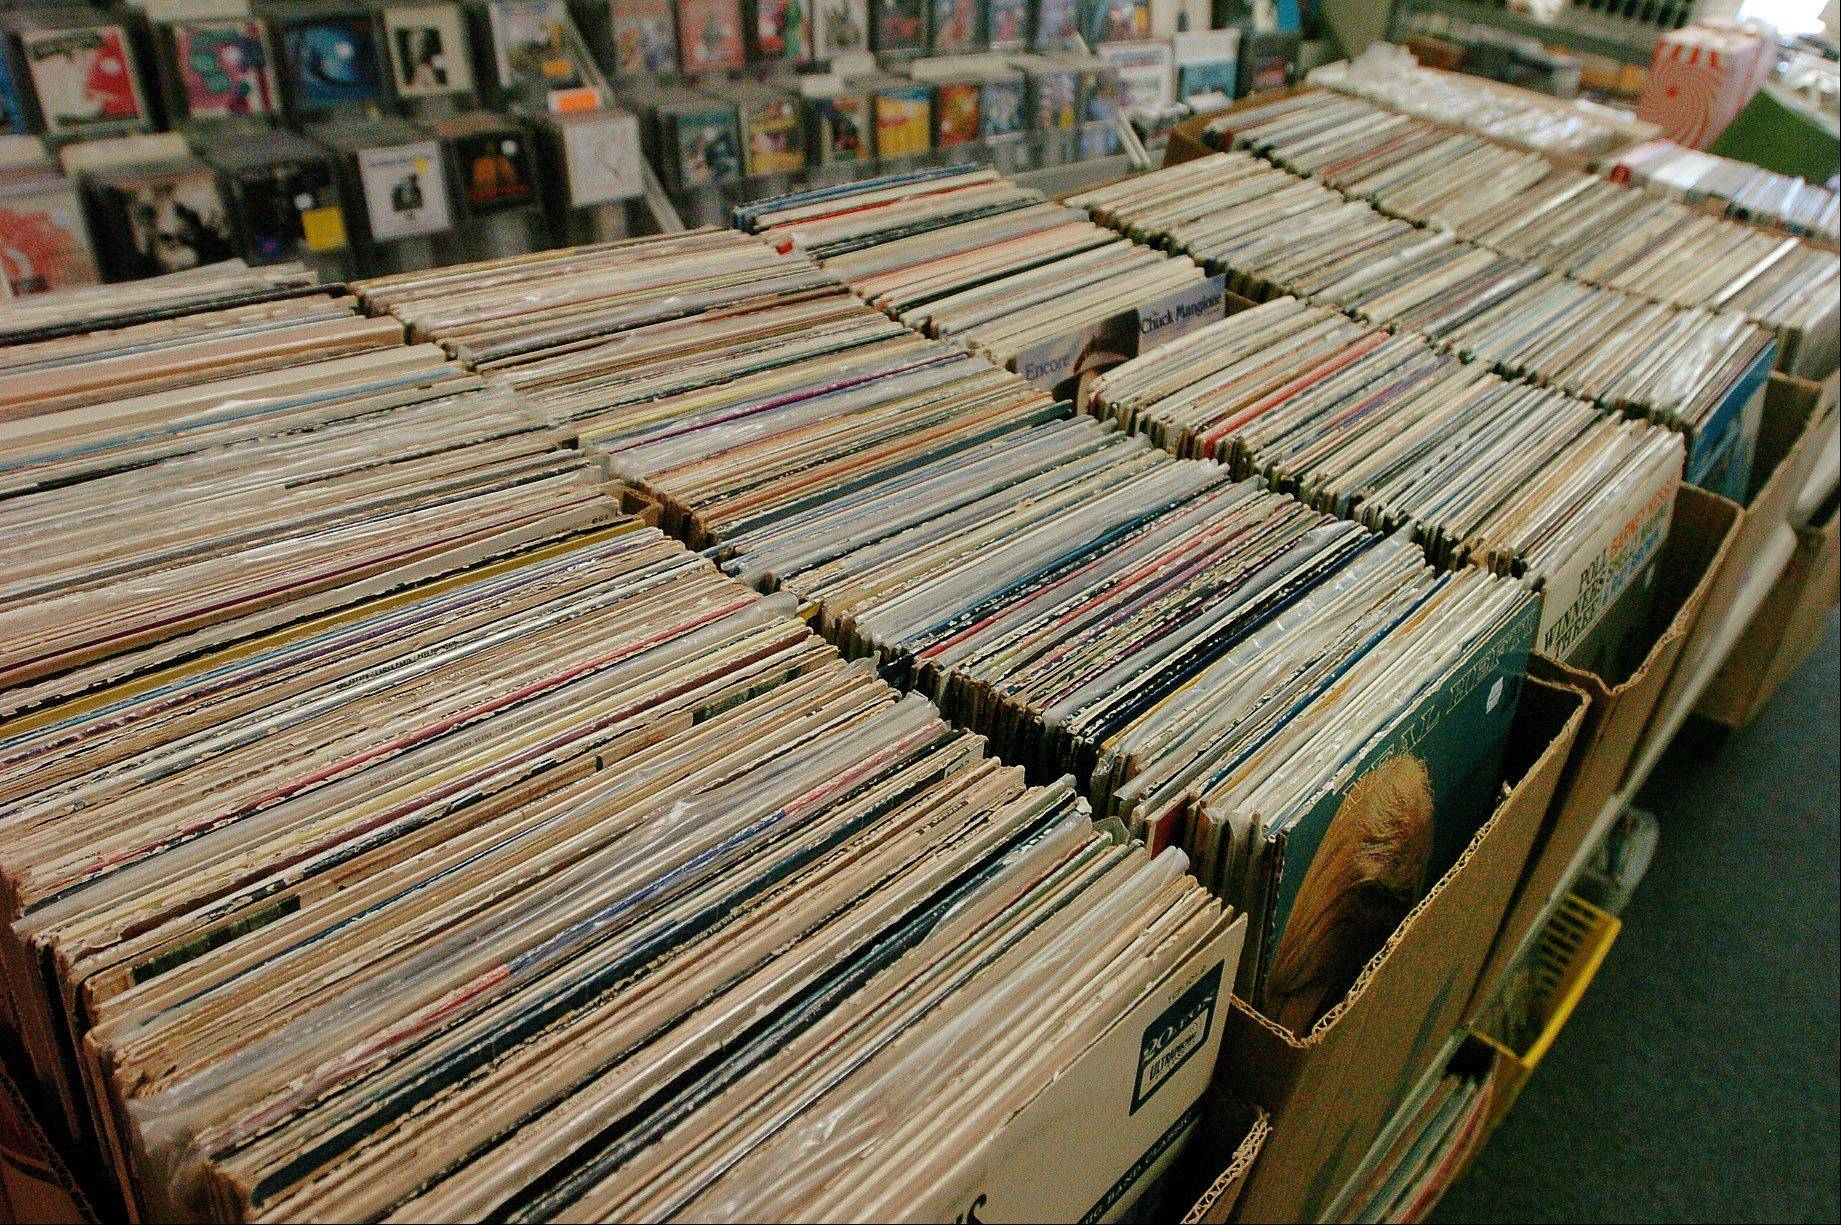 Rows and rows of records dominate the landscape at Rainbow Records in Barrington.